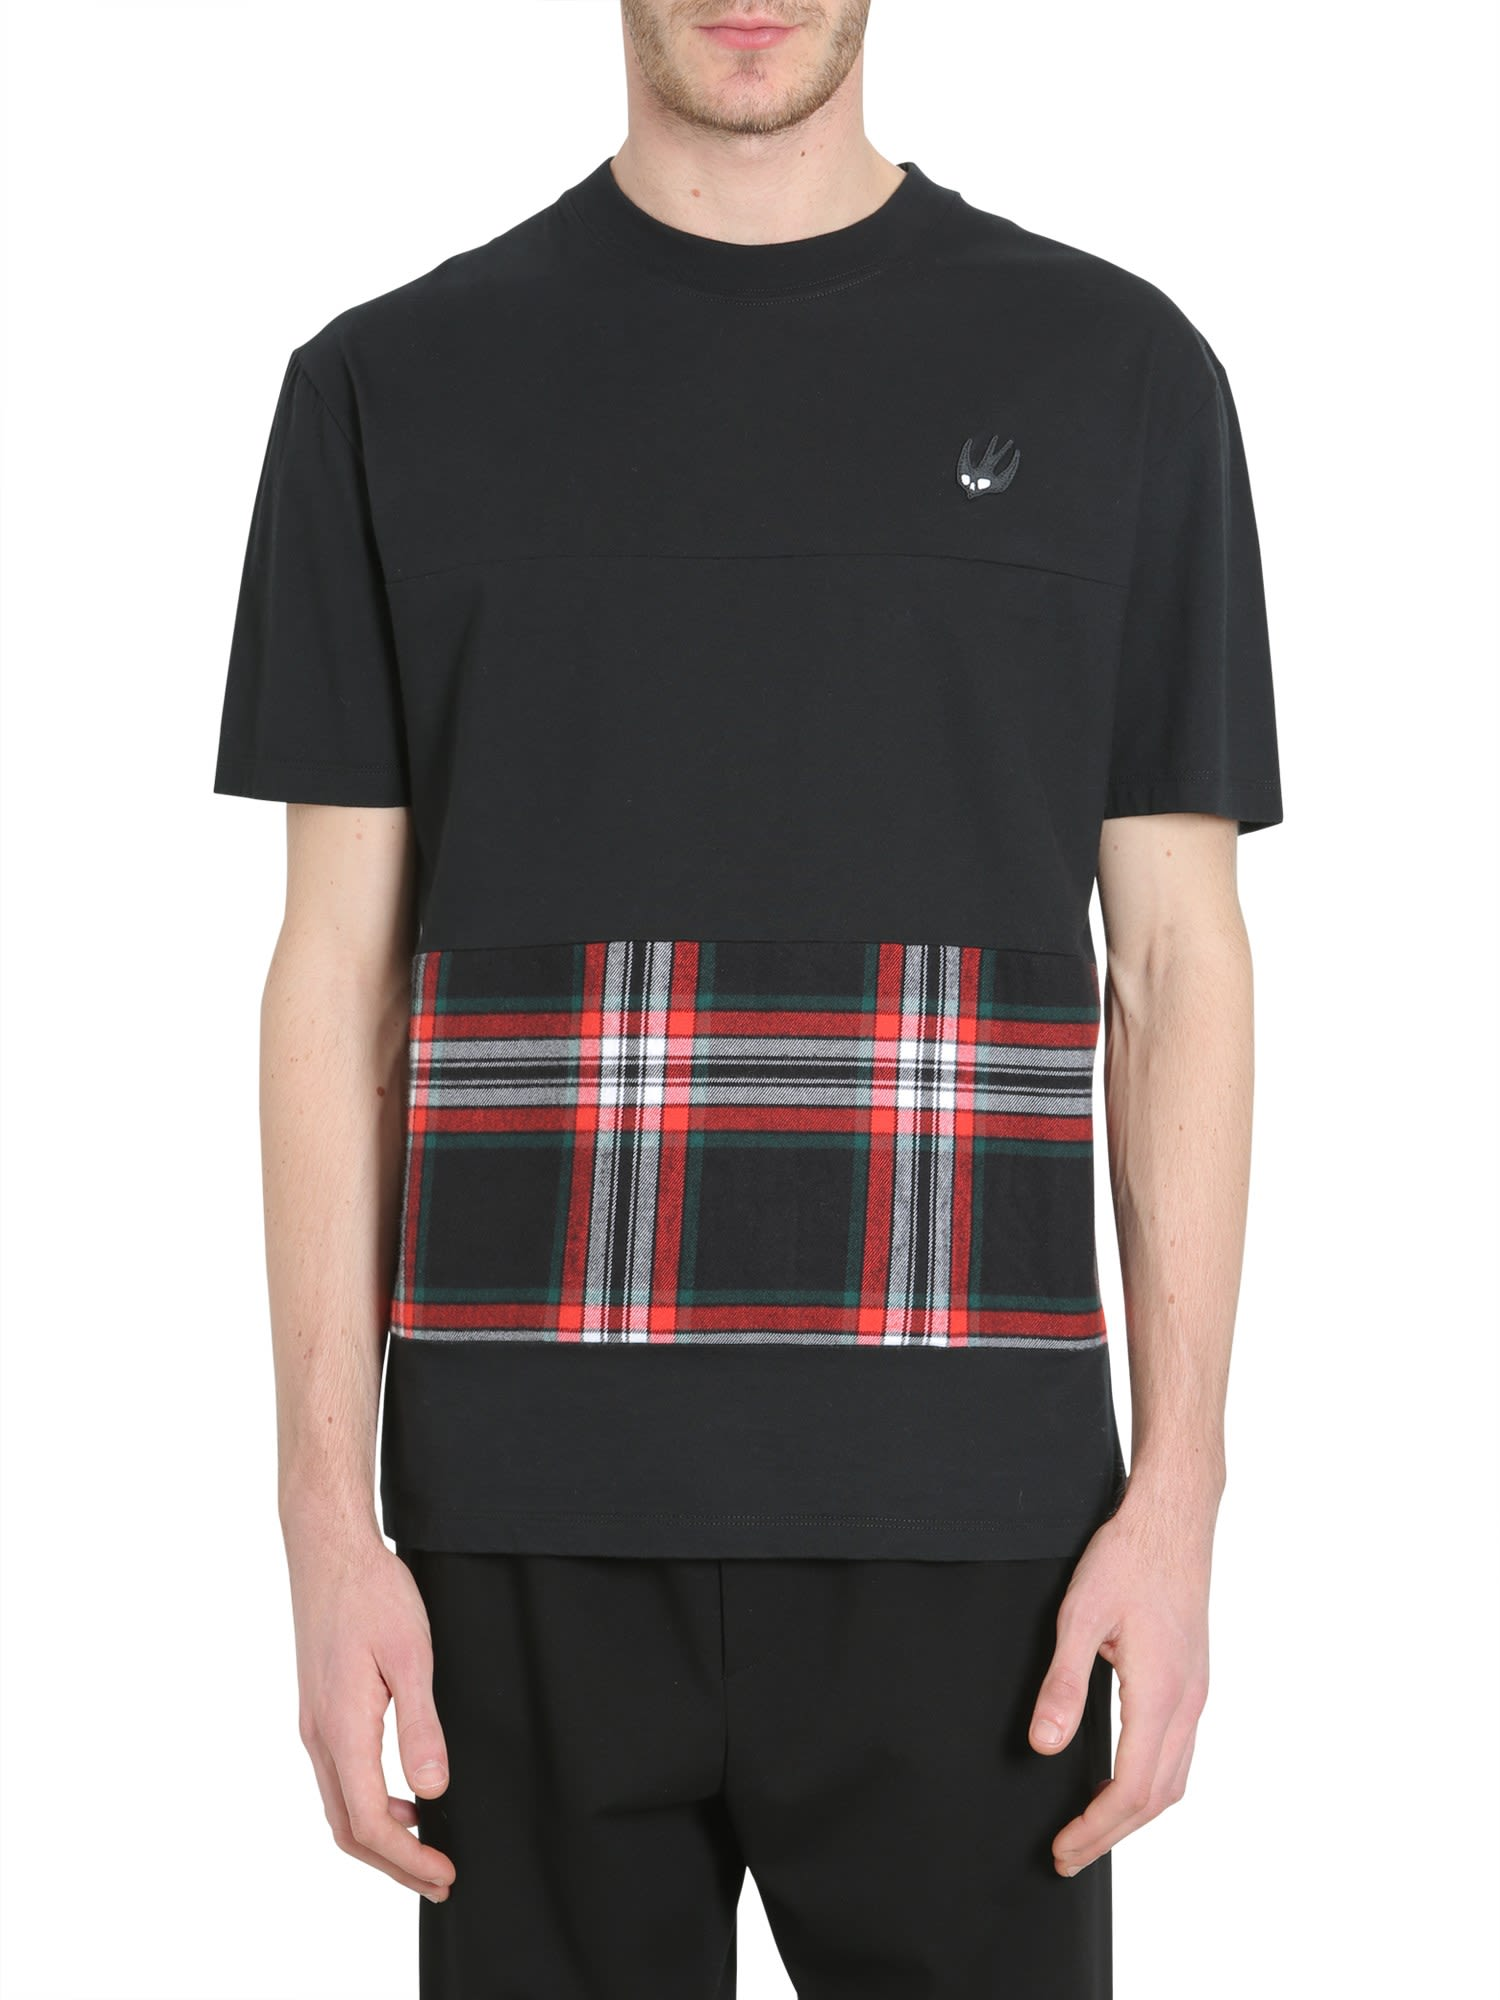 MCQ BY ALEXANDER MCQUEEN T-SHIRT WITH TARTAN INSERT